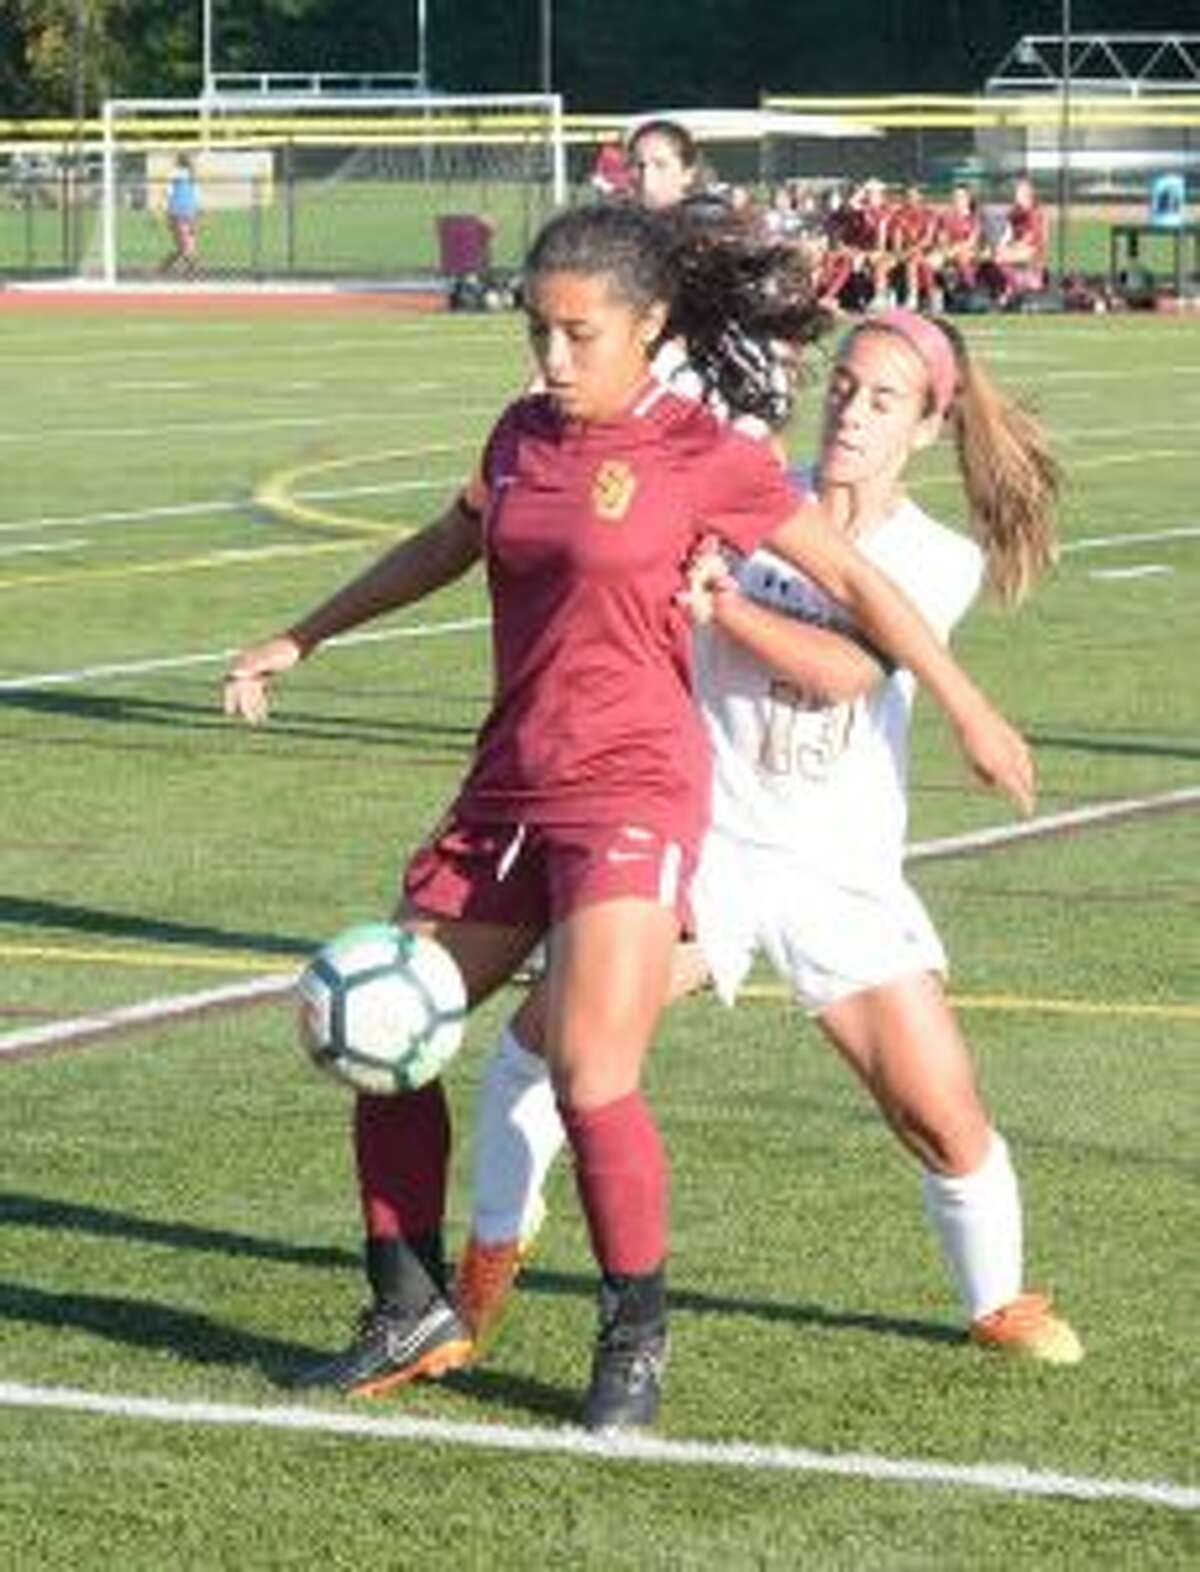 St. Joseph's Jessica Mazo deals with pressure applied by Jessica Esposito. - Andy Hutchison photos